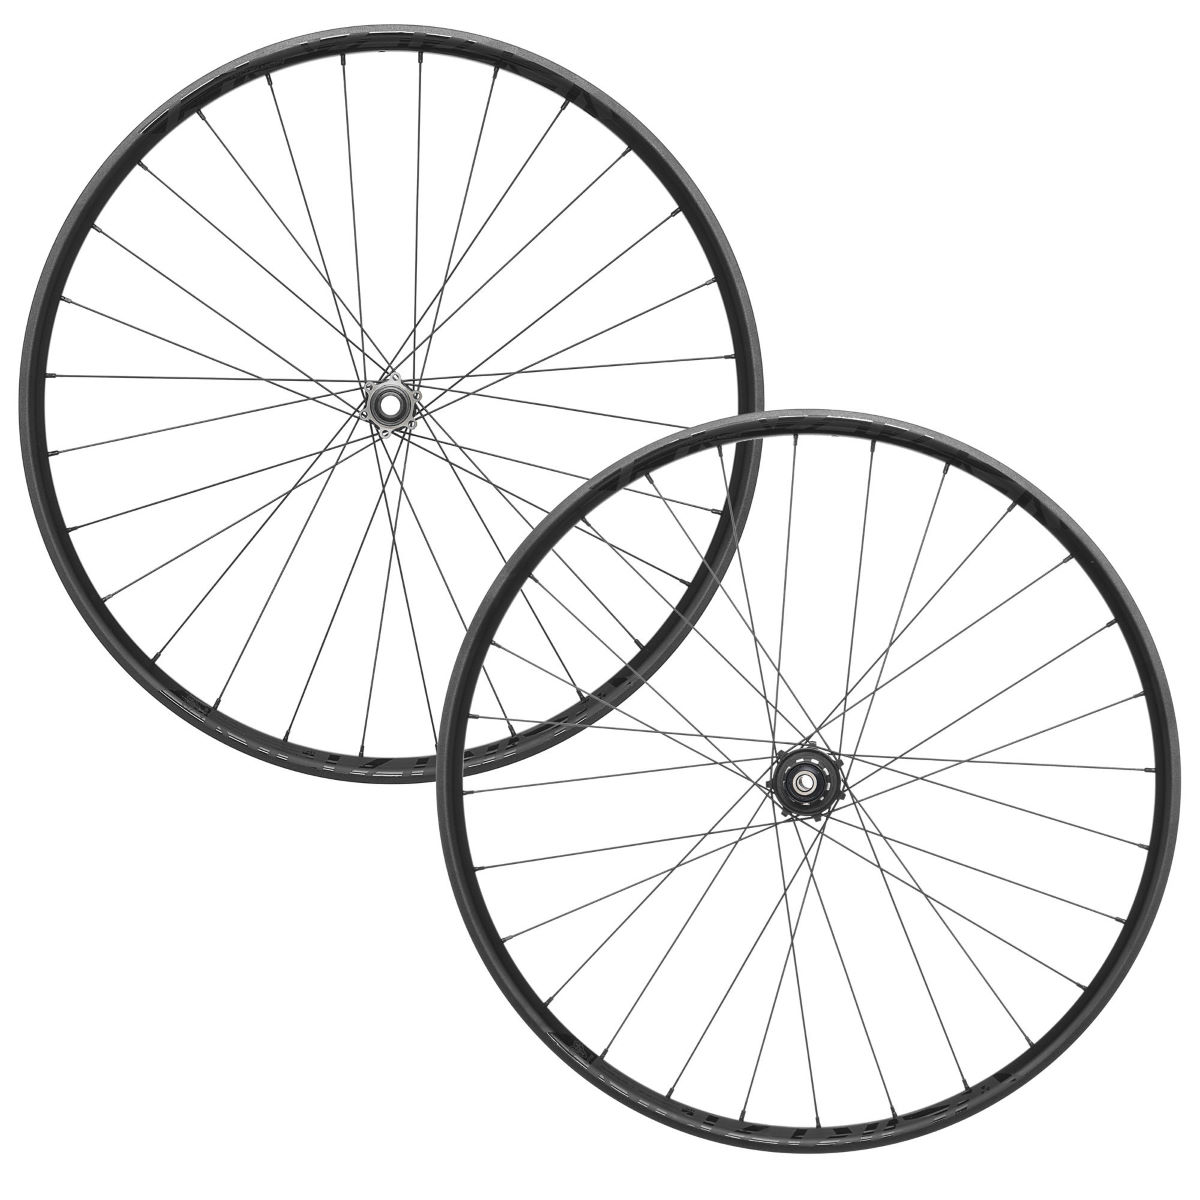 Nukeproof Nukeproof Horizon V1 MTB Wheelset - Black   Wheel Sets